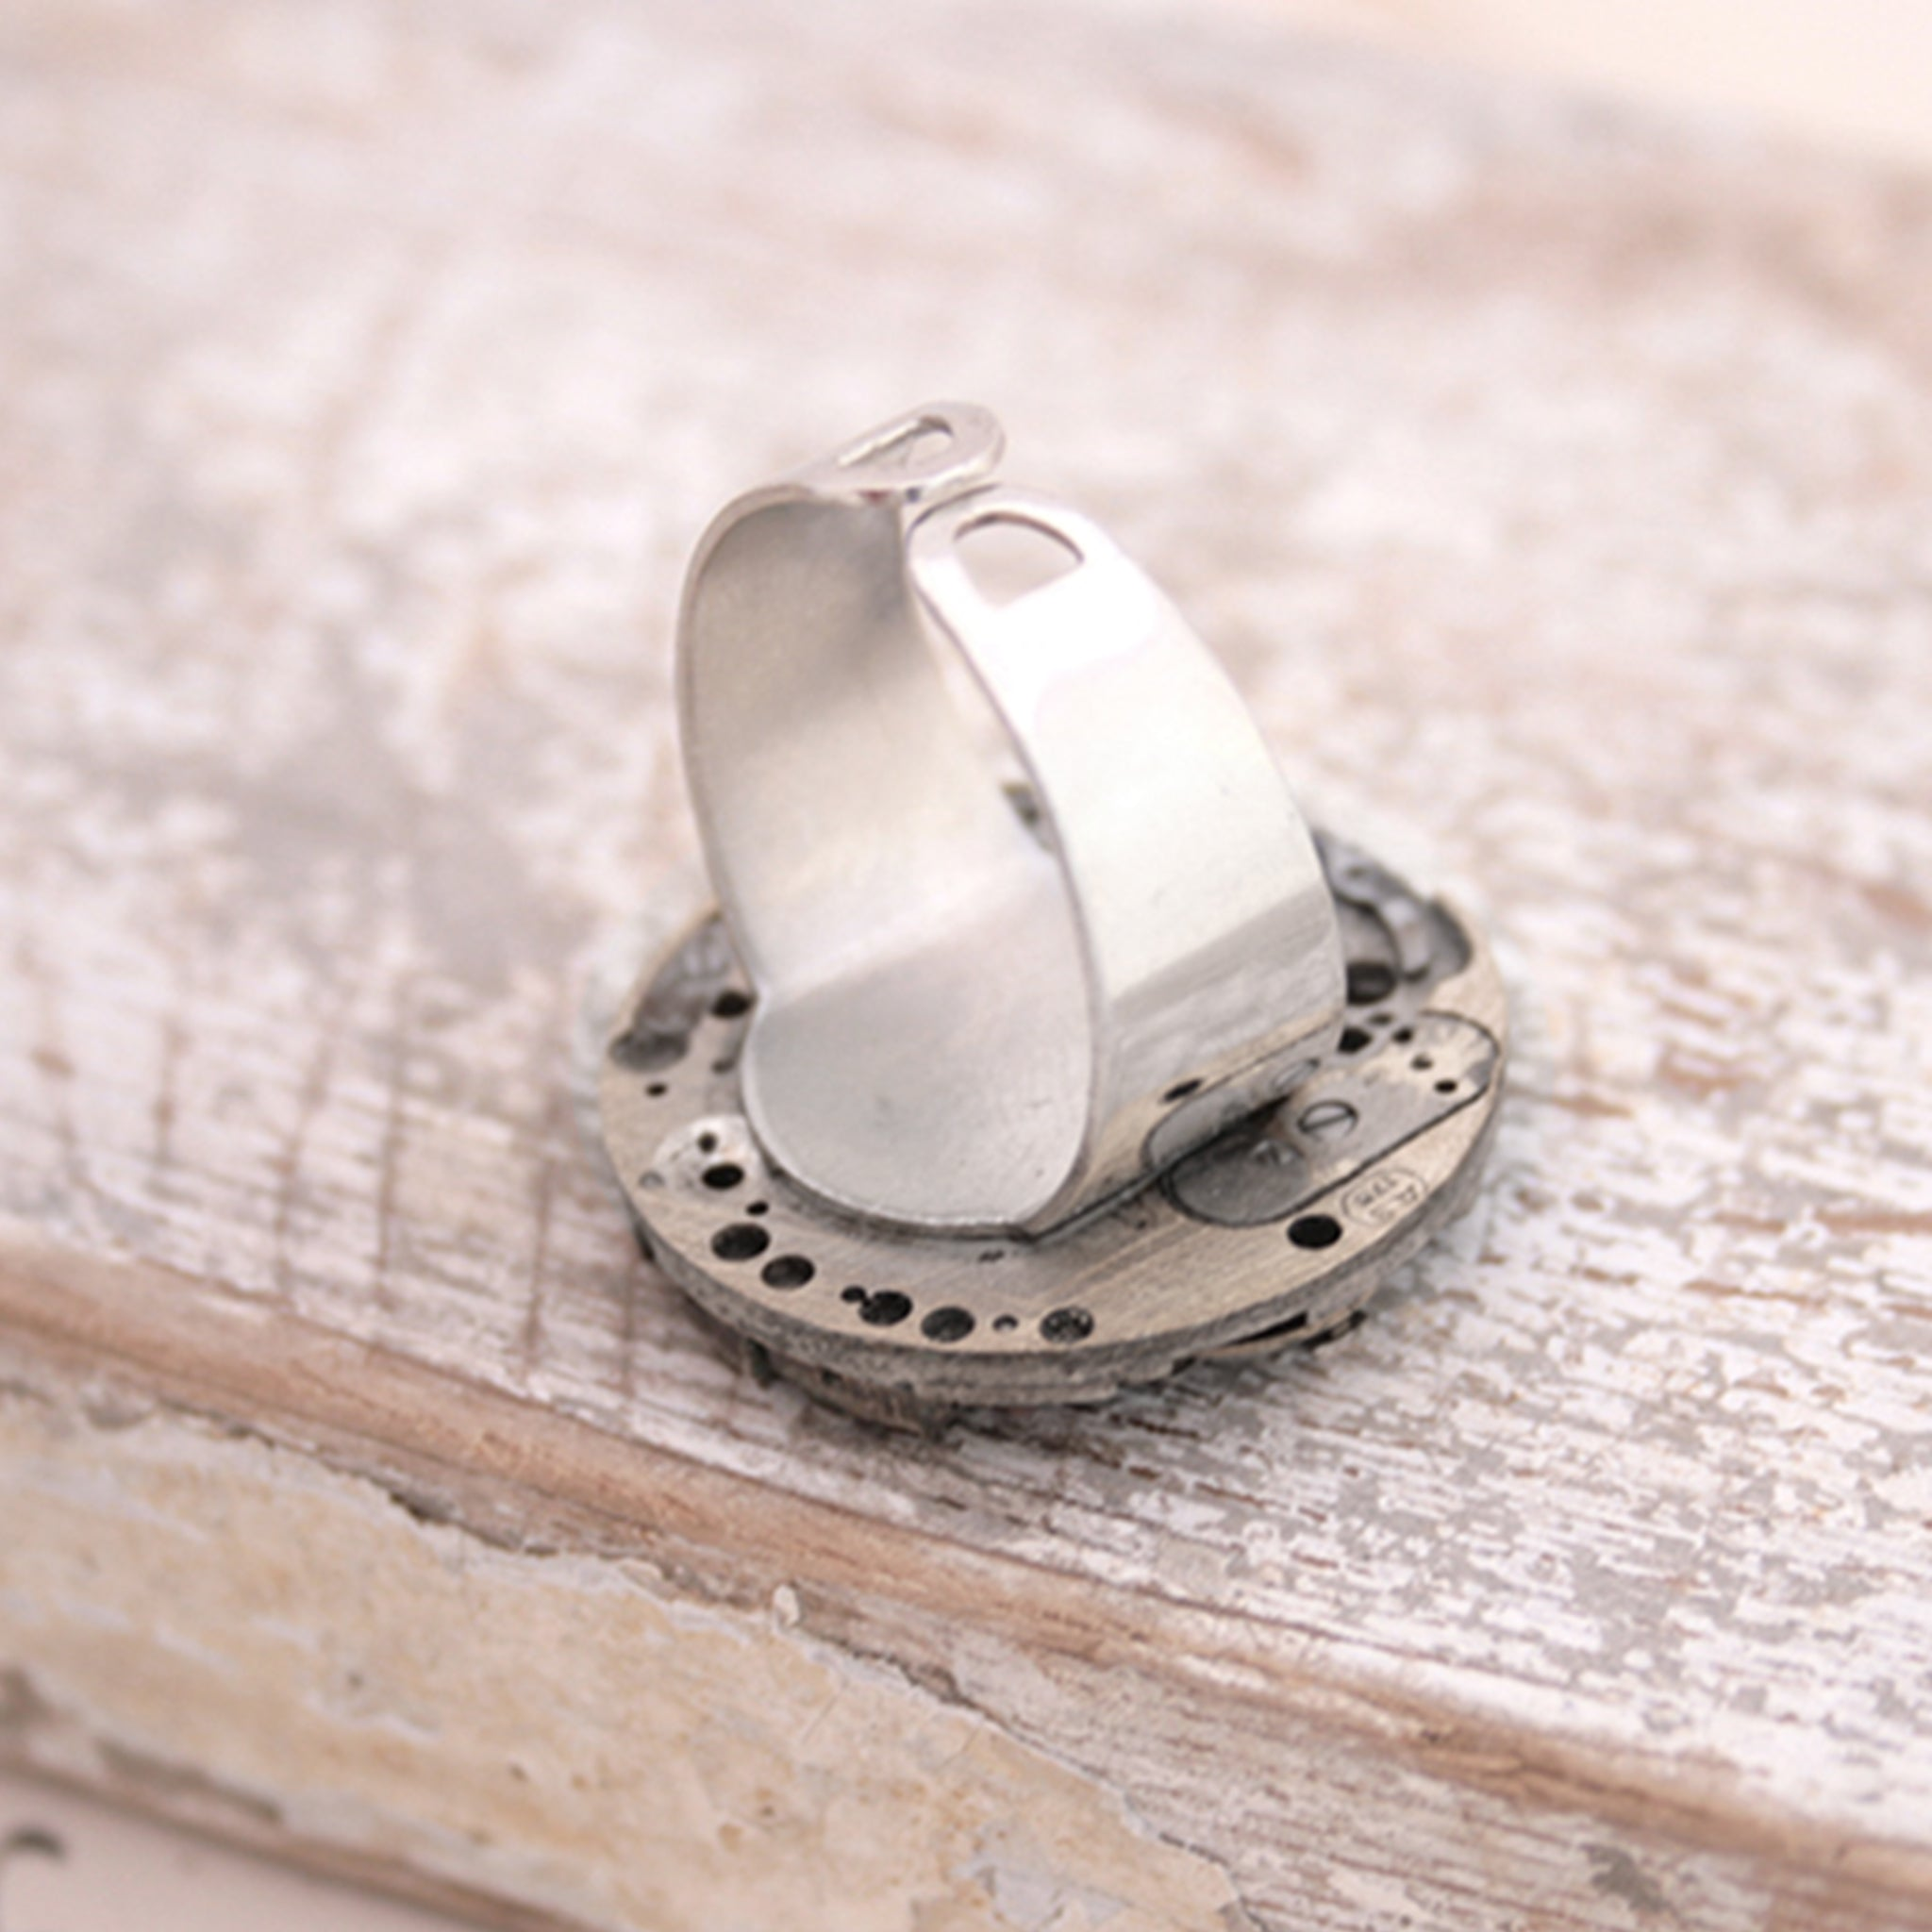 Adjustable Gothic Ring in Old Silver made of watch mechanism